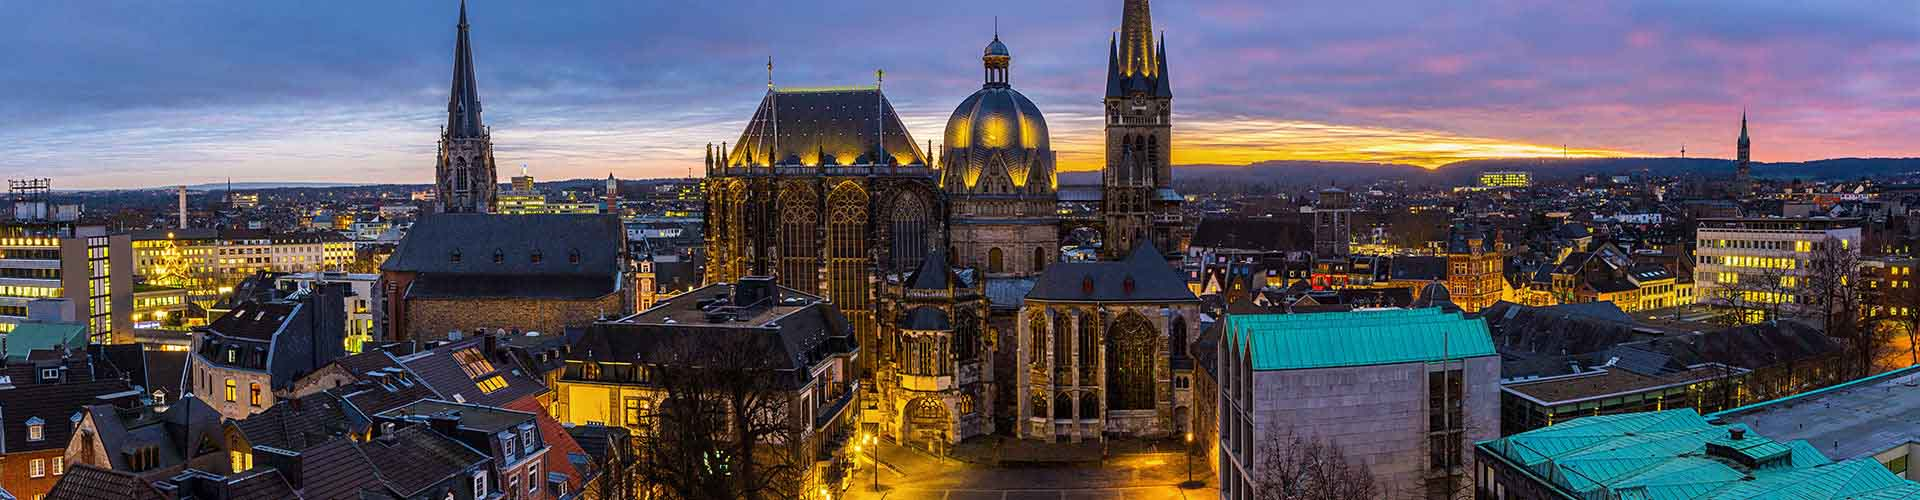 Aachen – Hostels in Aachen. Maps for Aachen, Photos and Reviews for each hostel in Aachen.